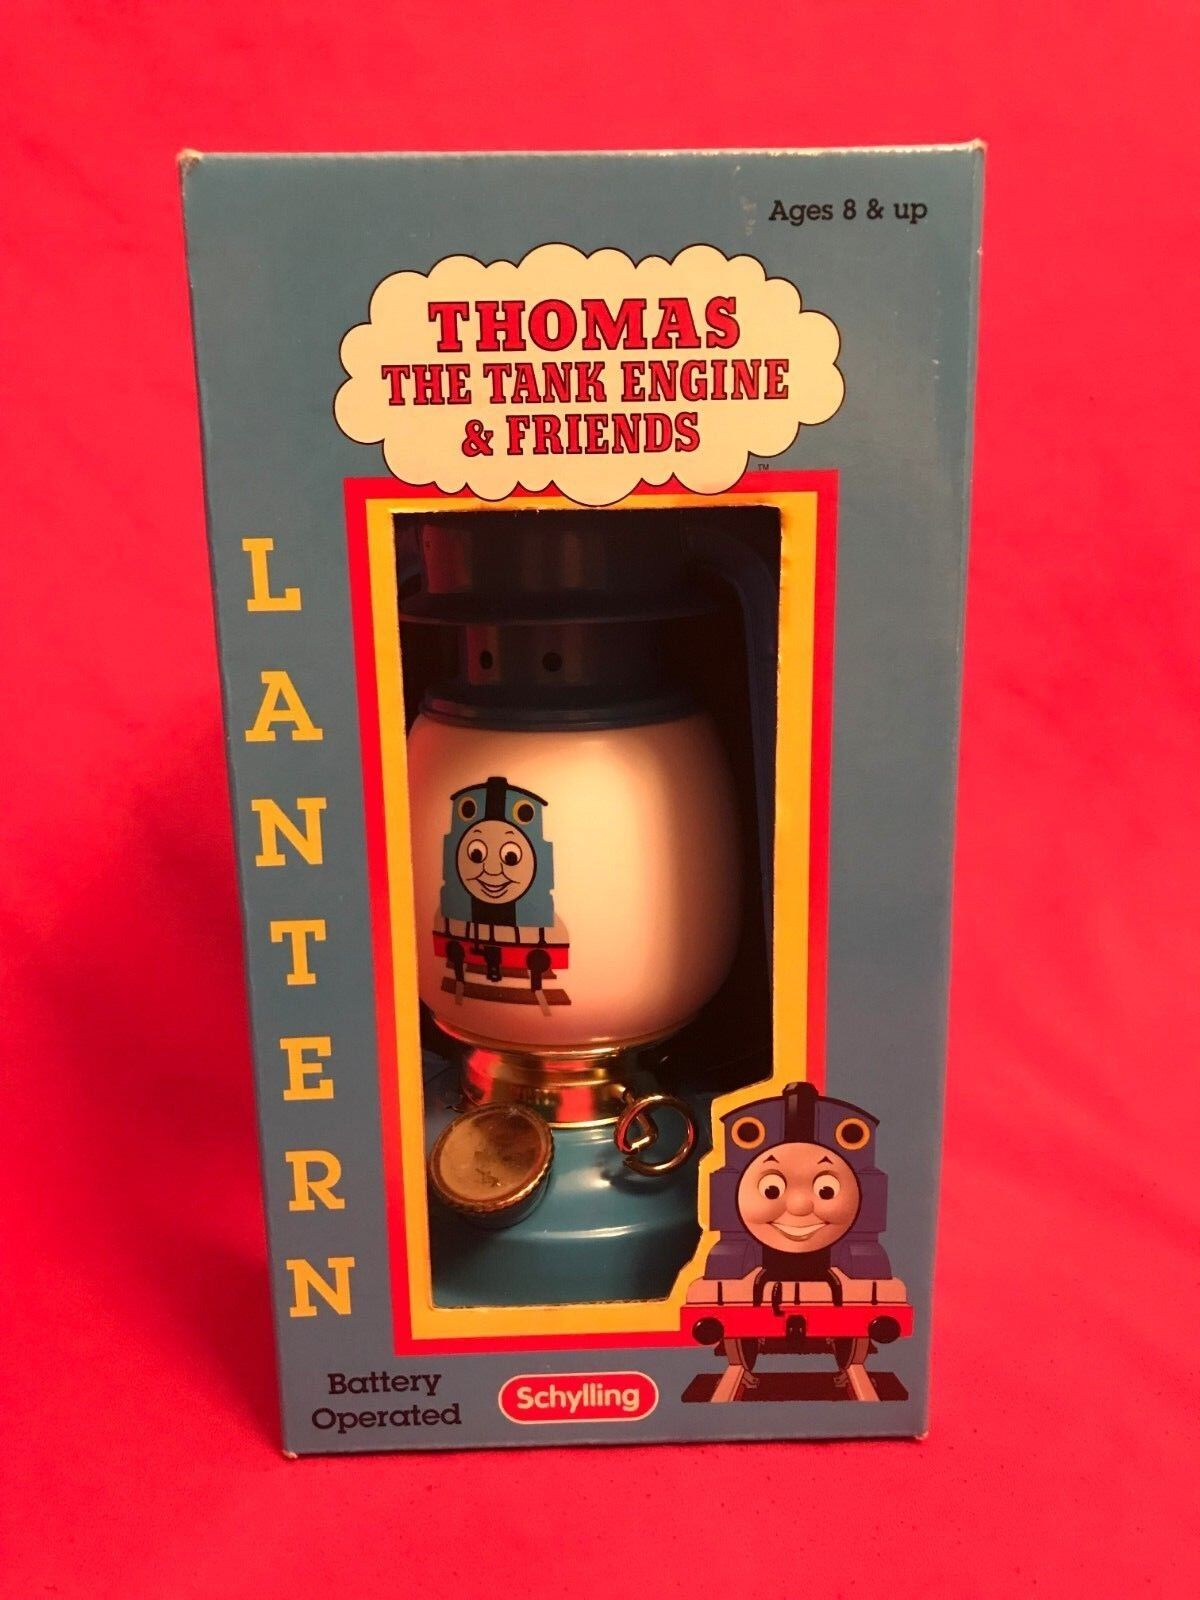 1999 Schylling Thomas The Tank Engine & Friends Metal Lantern In the Box